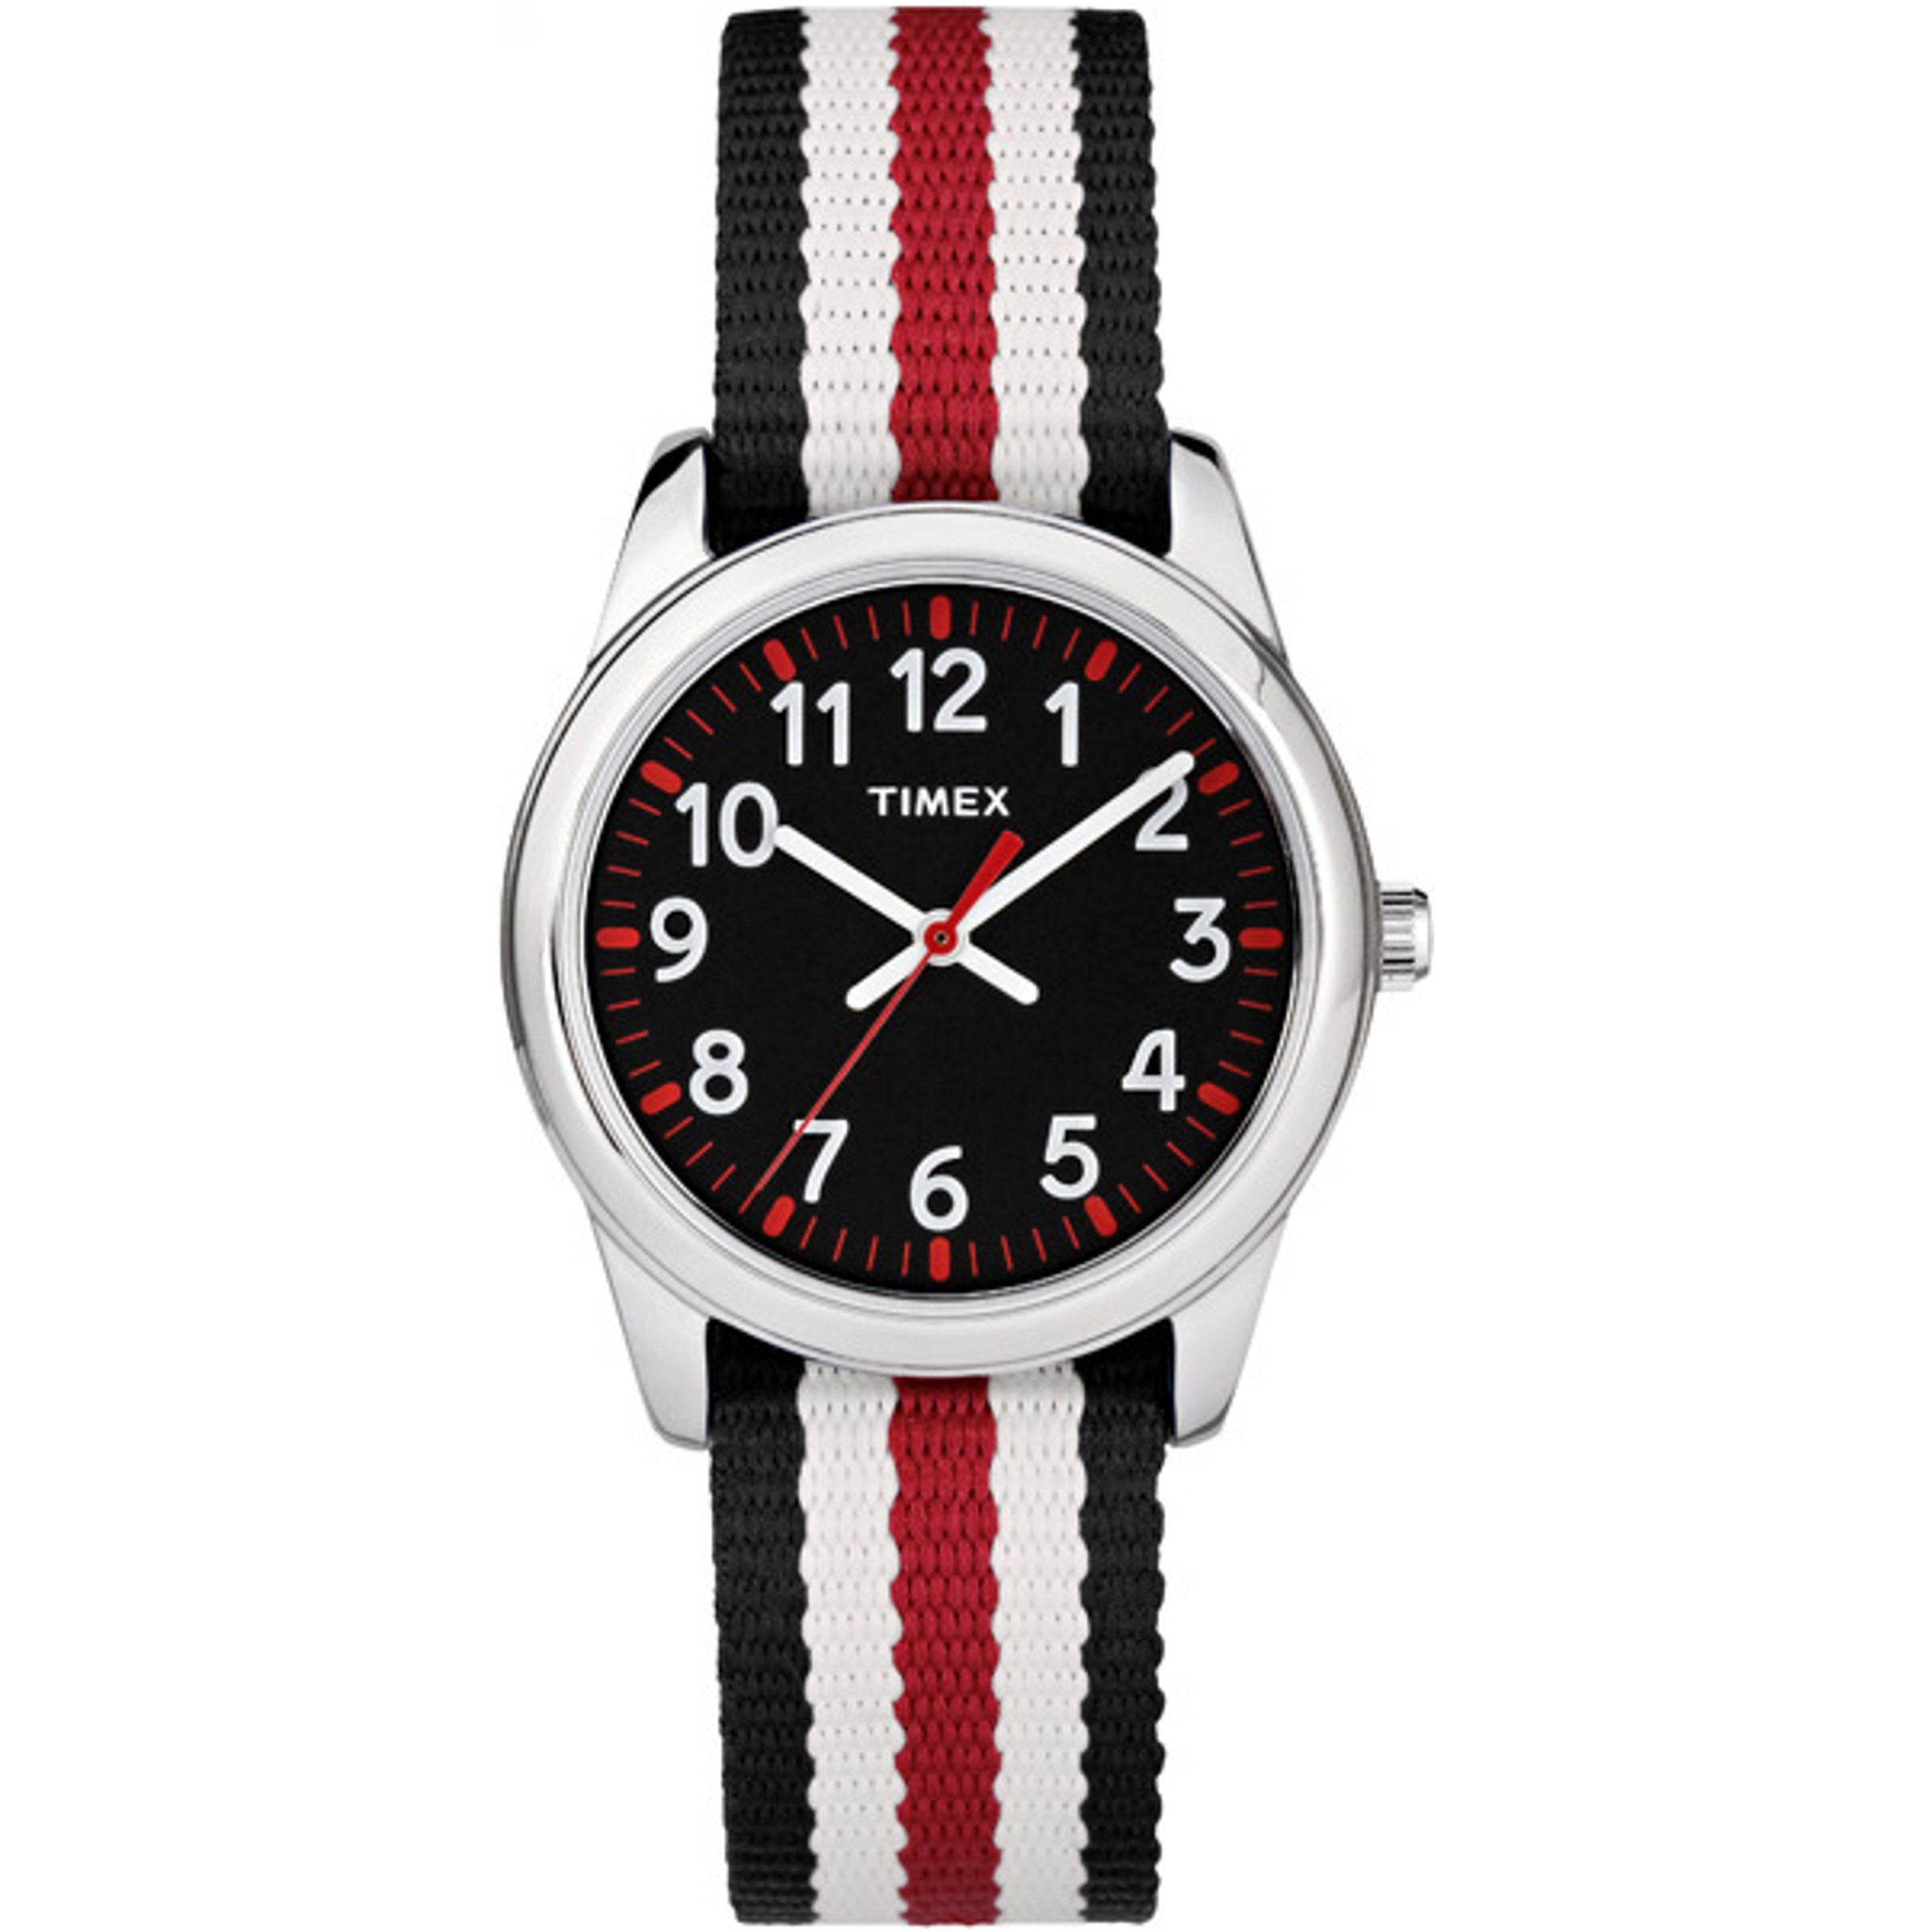 Timex Boys TW7C10200 Time Machines Metal Black/Red Stripes Nylon Strap Watch by Timex